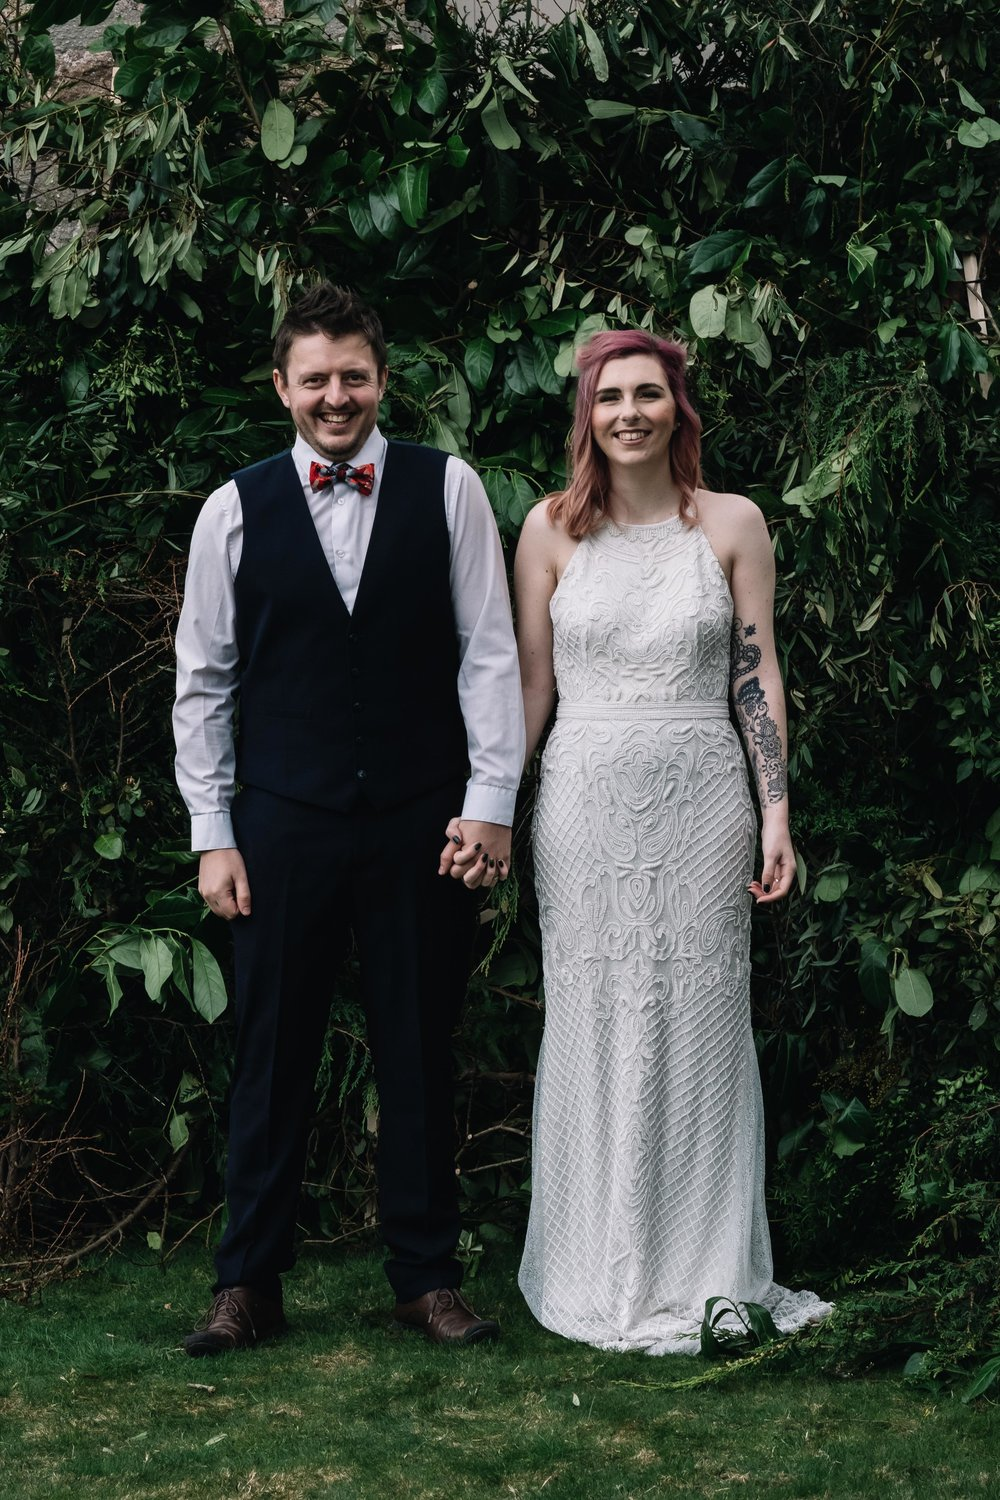 Bride and groom looking to camera holding hands with a green living wall behing them.